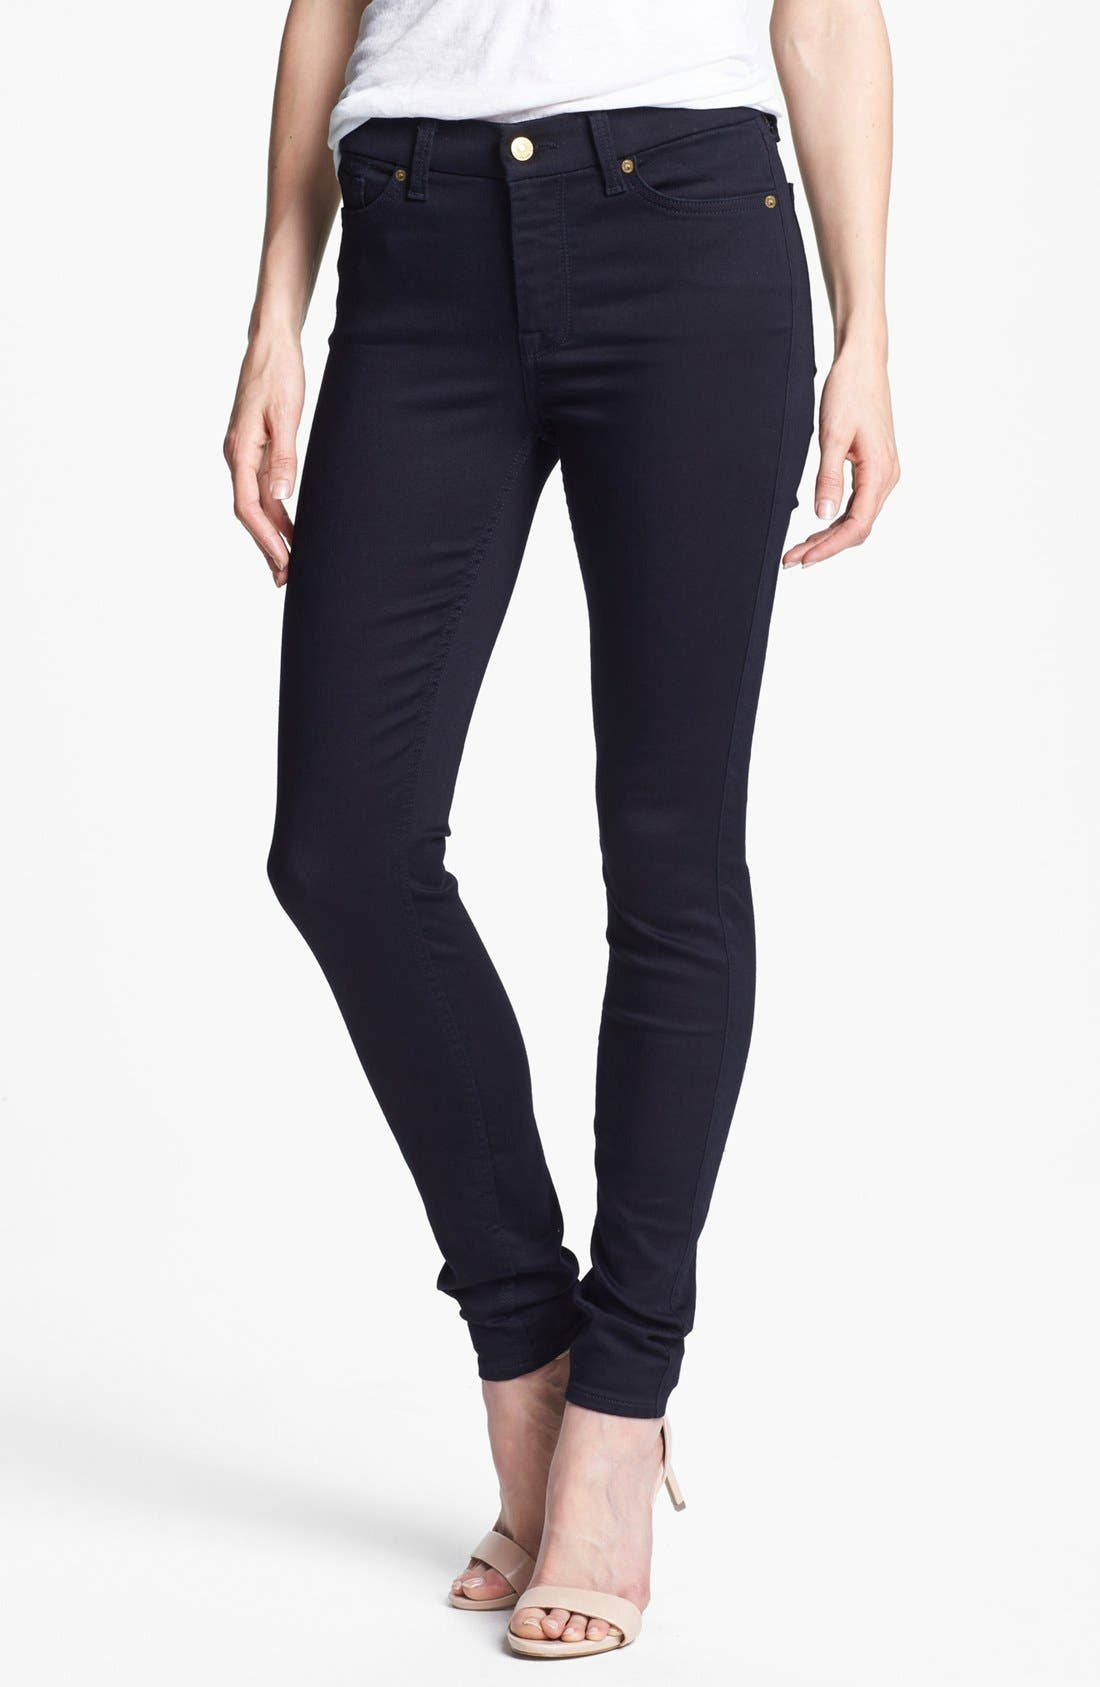 Alternate Image 1 Selected - 7 For All Mankind® 'The Skinny' Stretch Jeans (Elasticity Clean Blue)